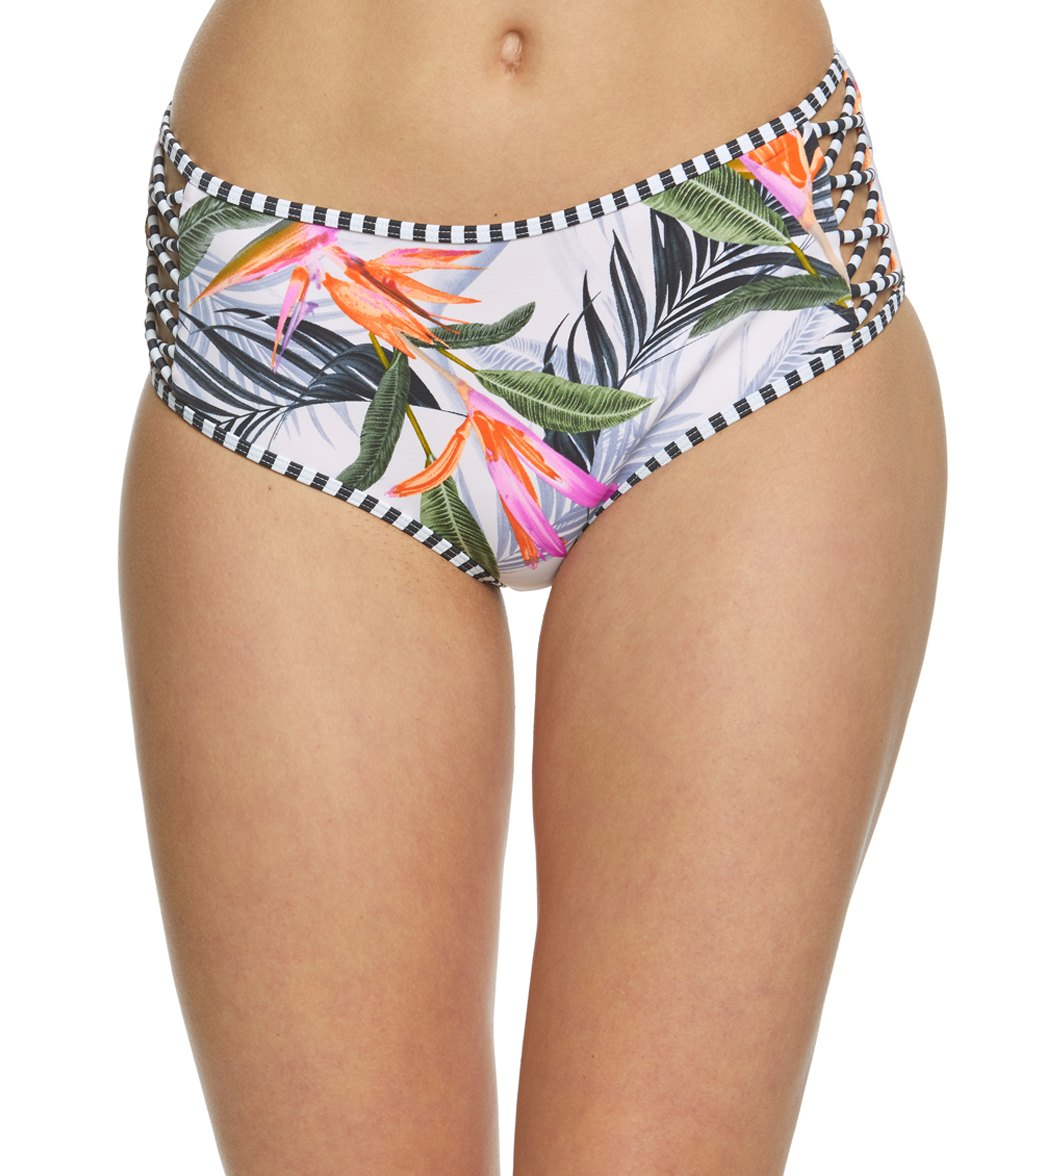 995a21b1bcc7f Body Glove Litz Retro Bikini Bottom at SwimOutlet.com - Free Shipping